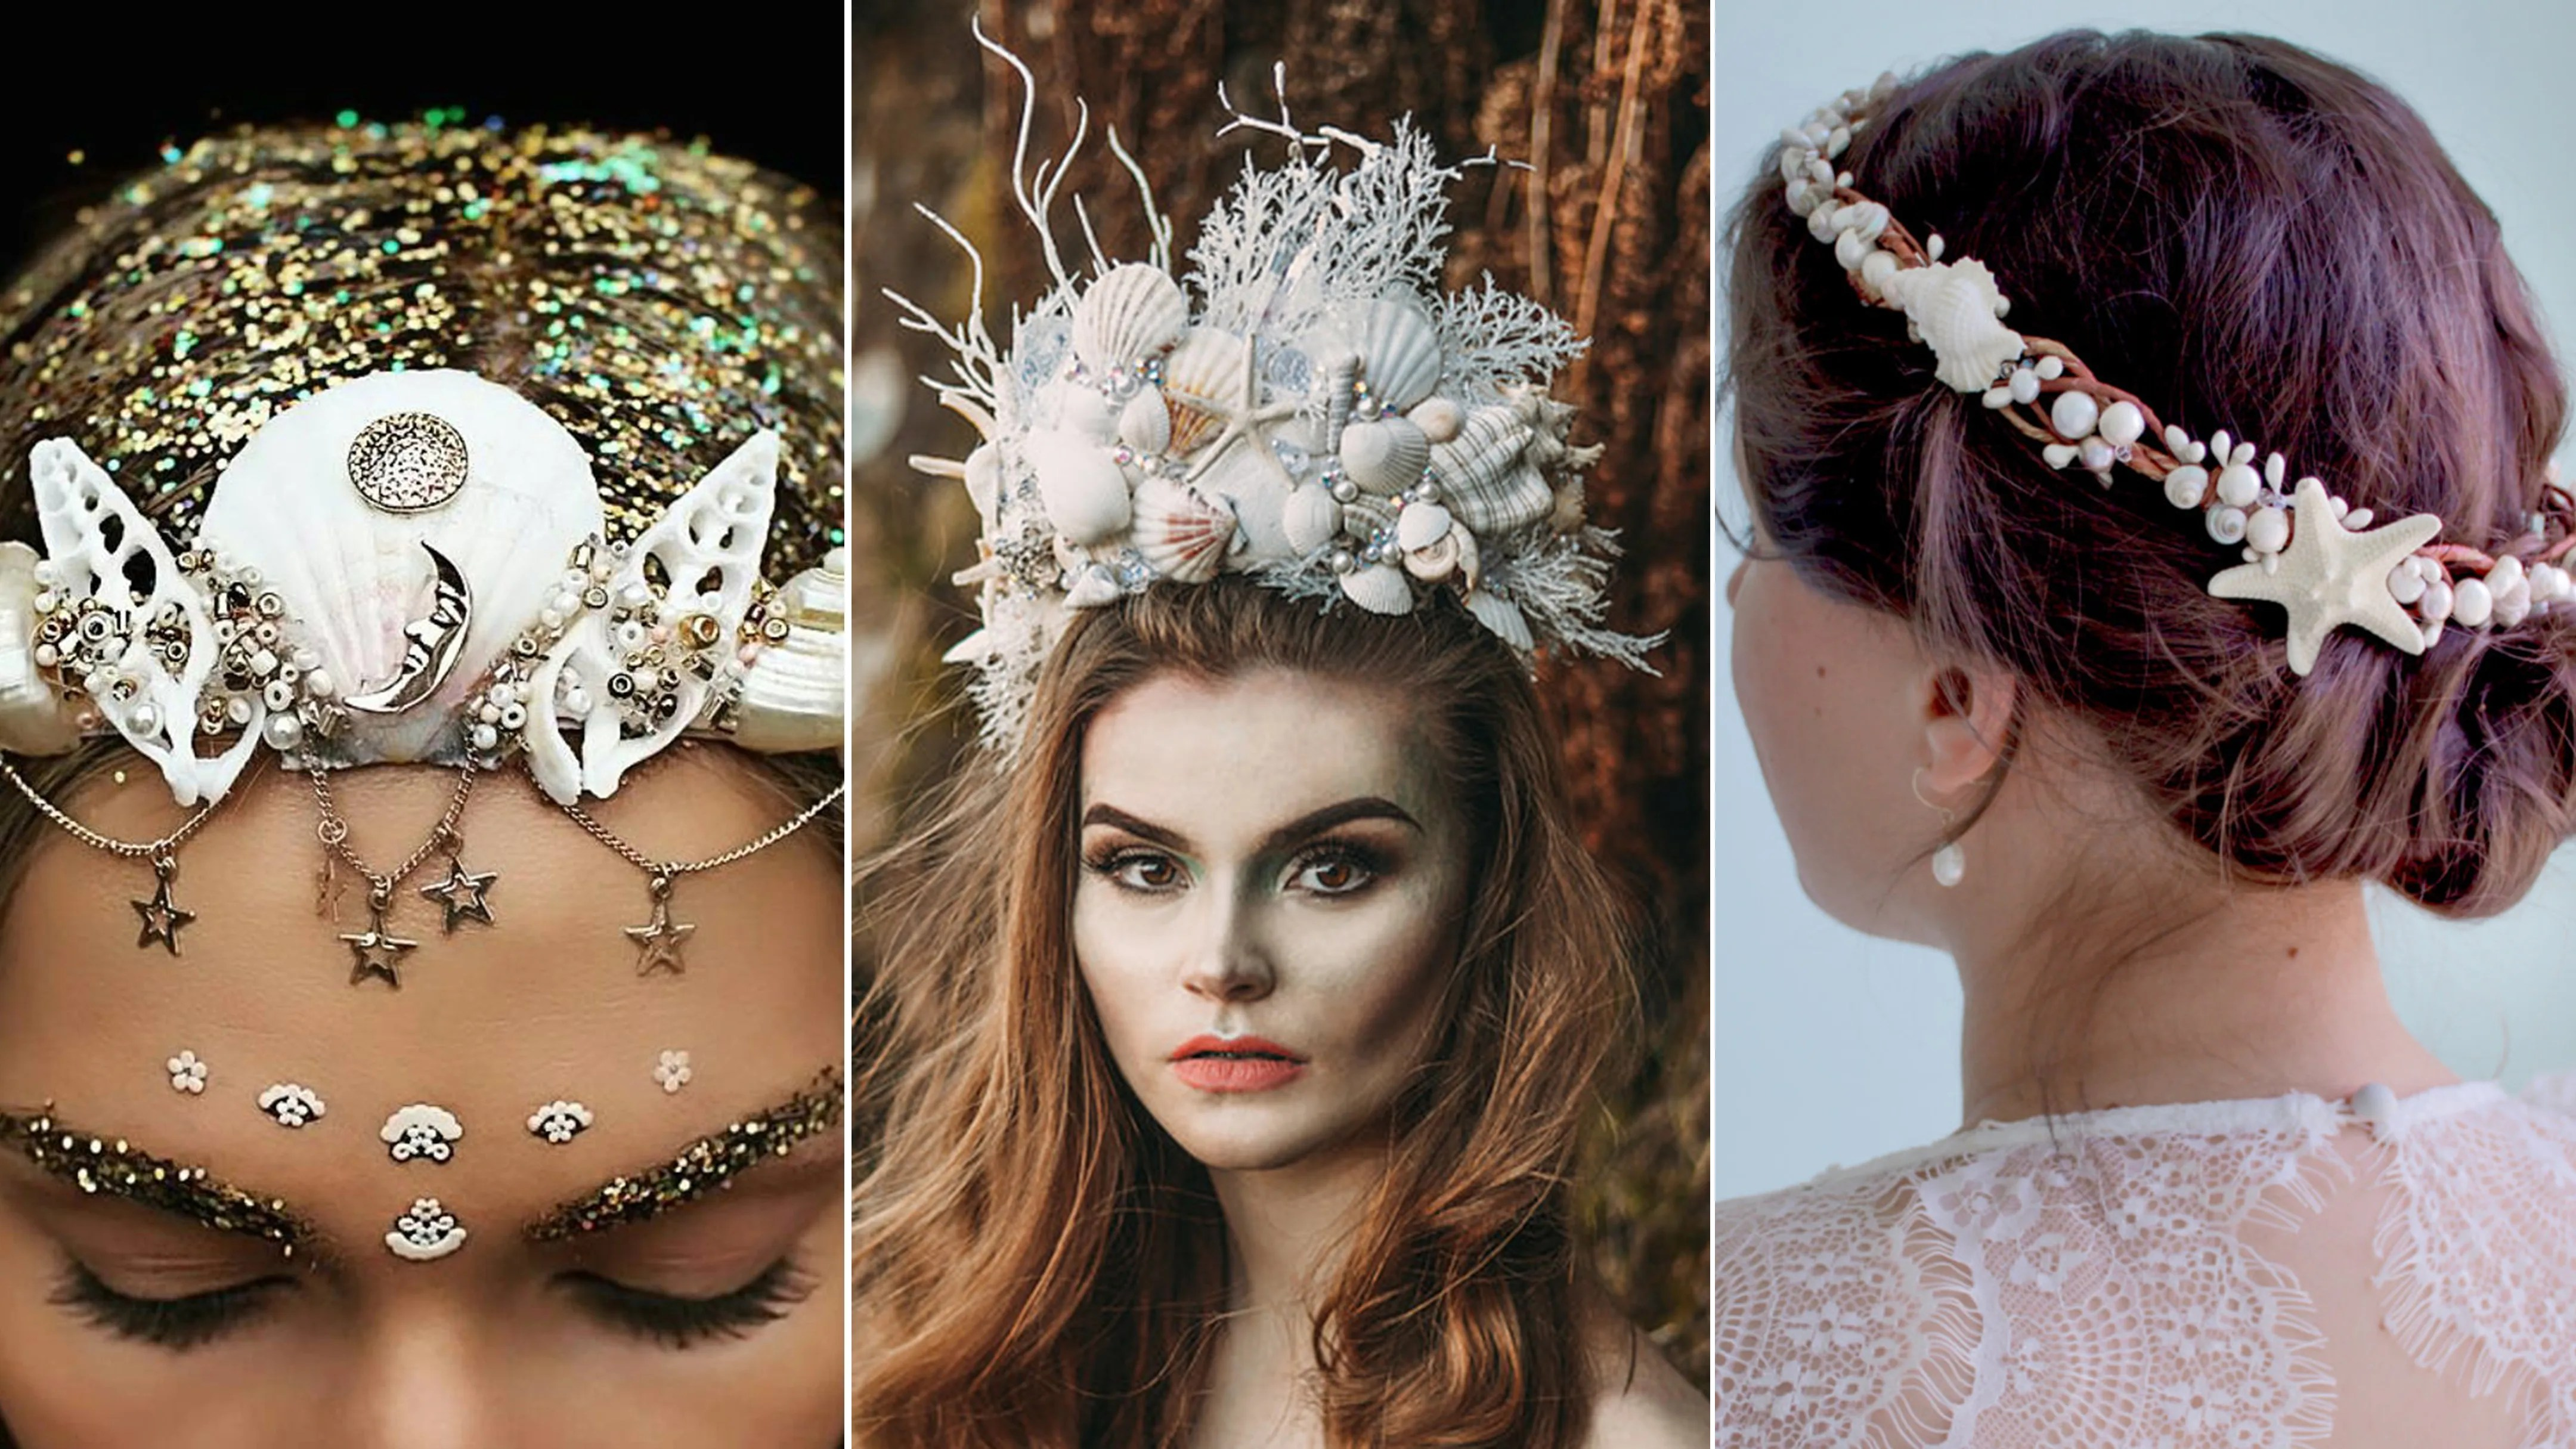 10 Stunning Mermaid Crowns To Combat Your Flower Crown